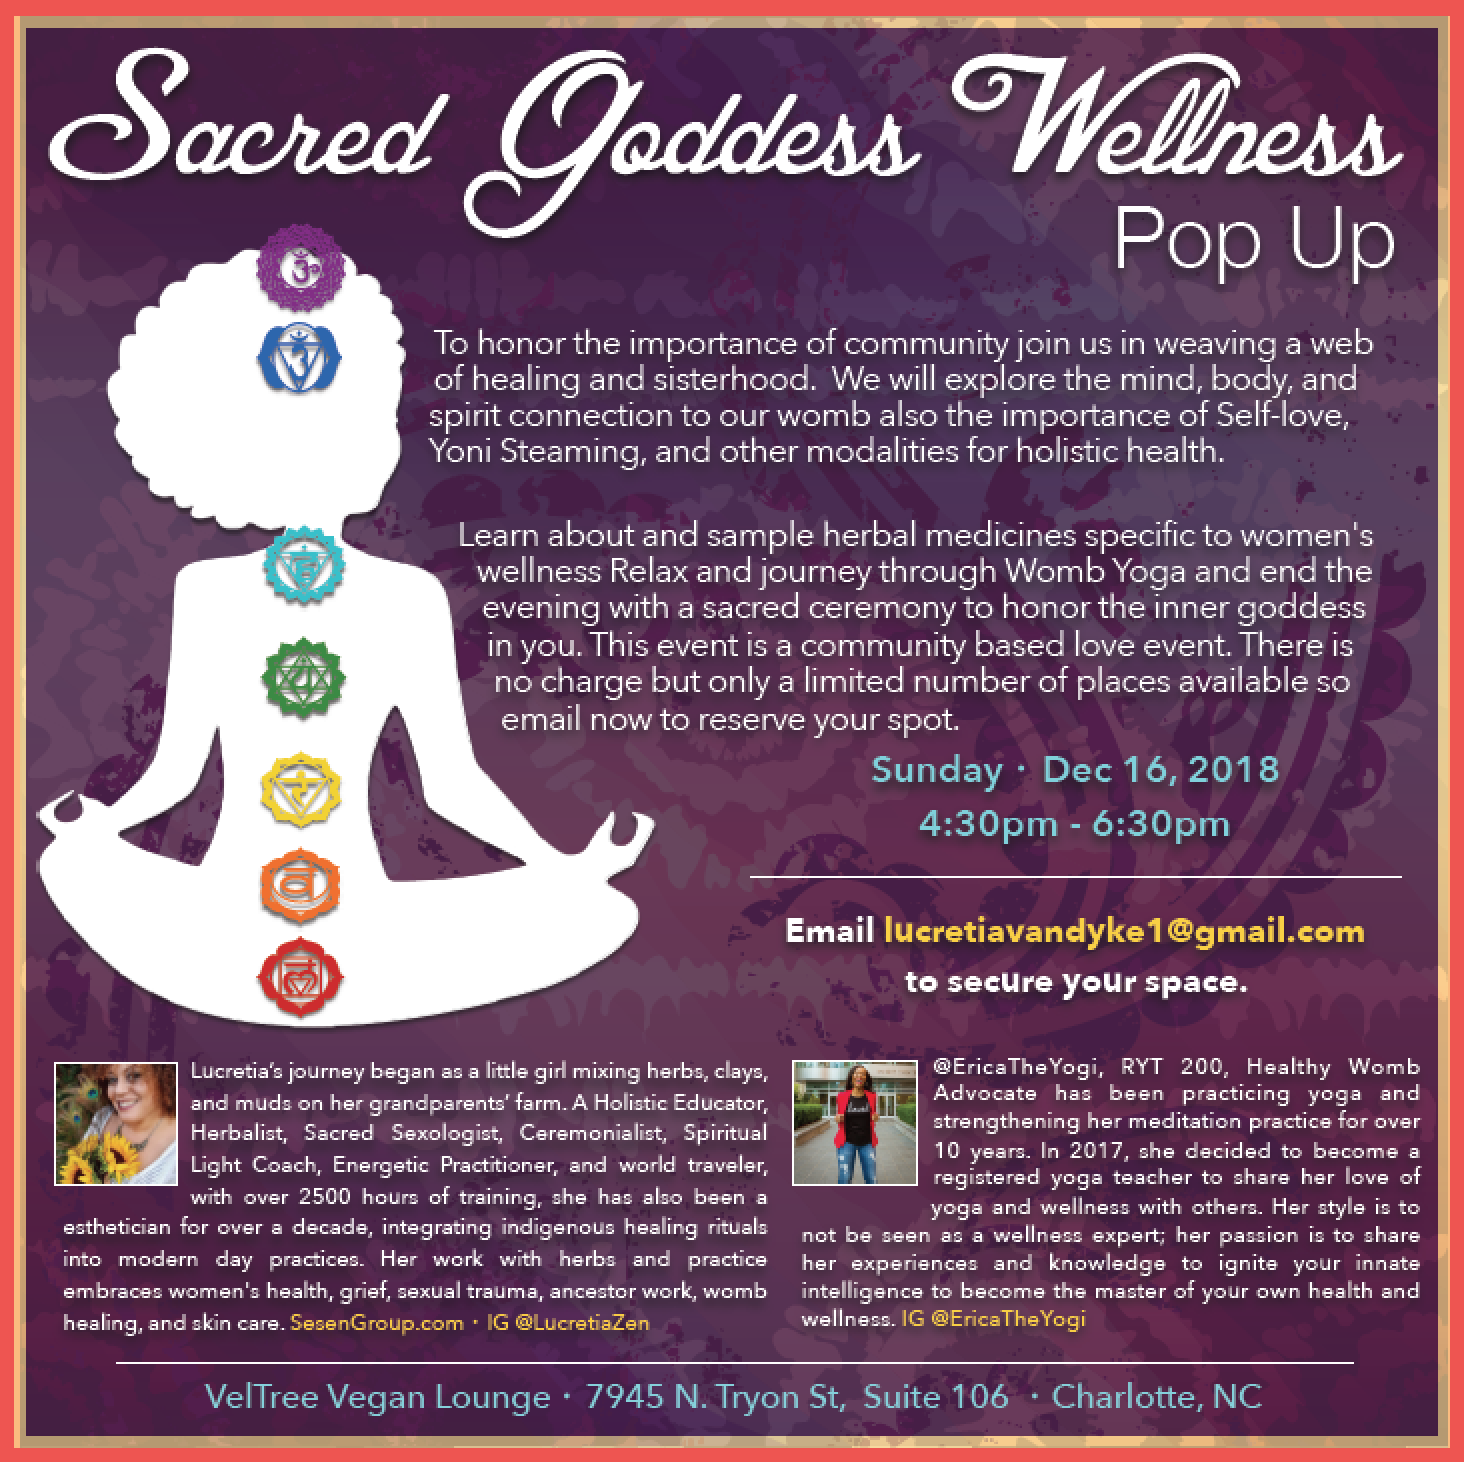 Sacred Goddess Wellness